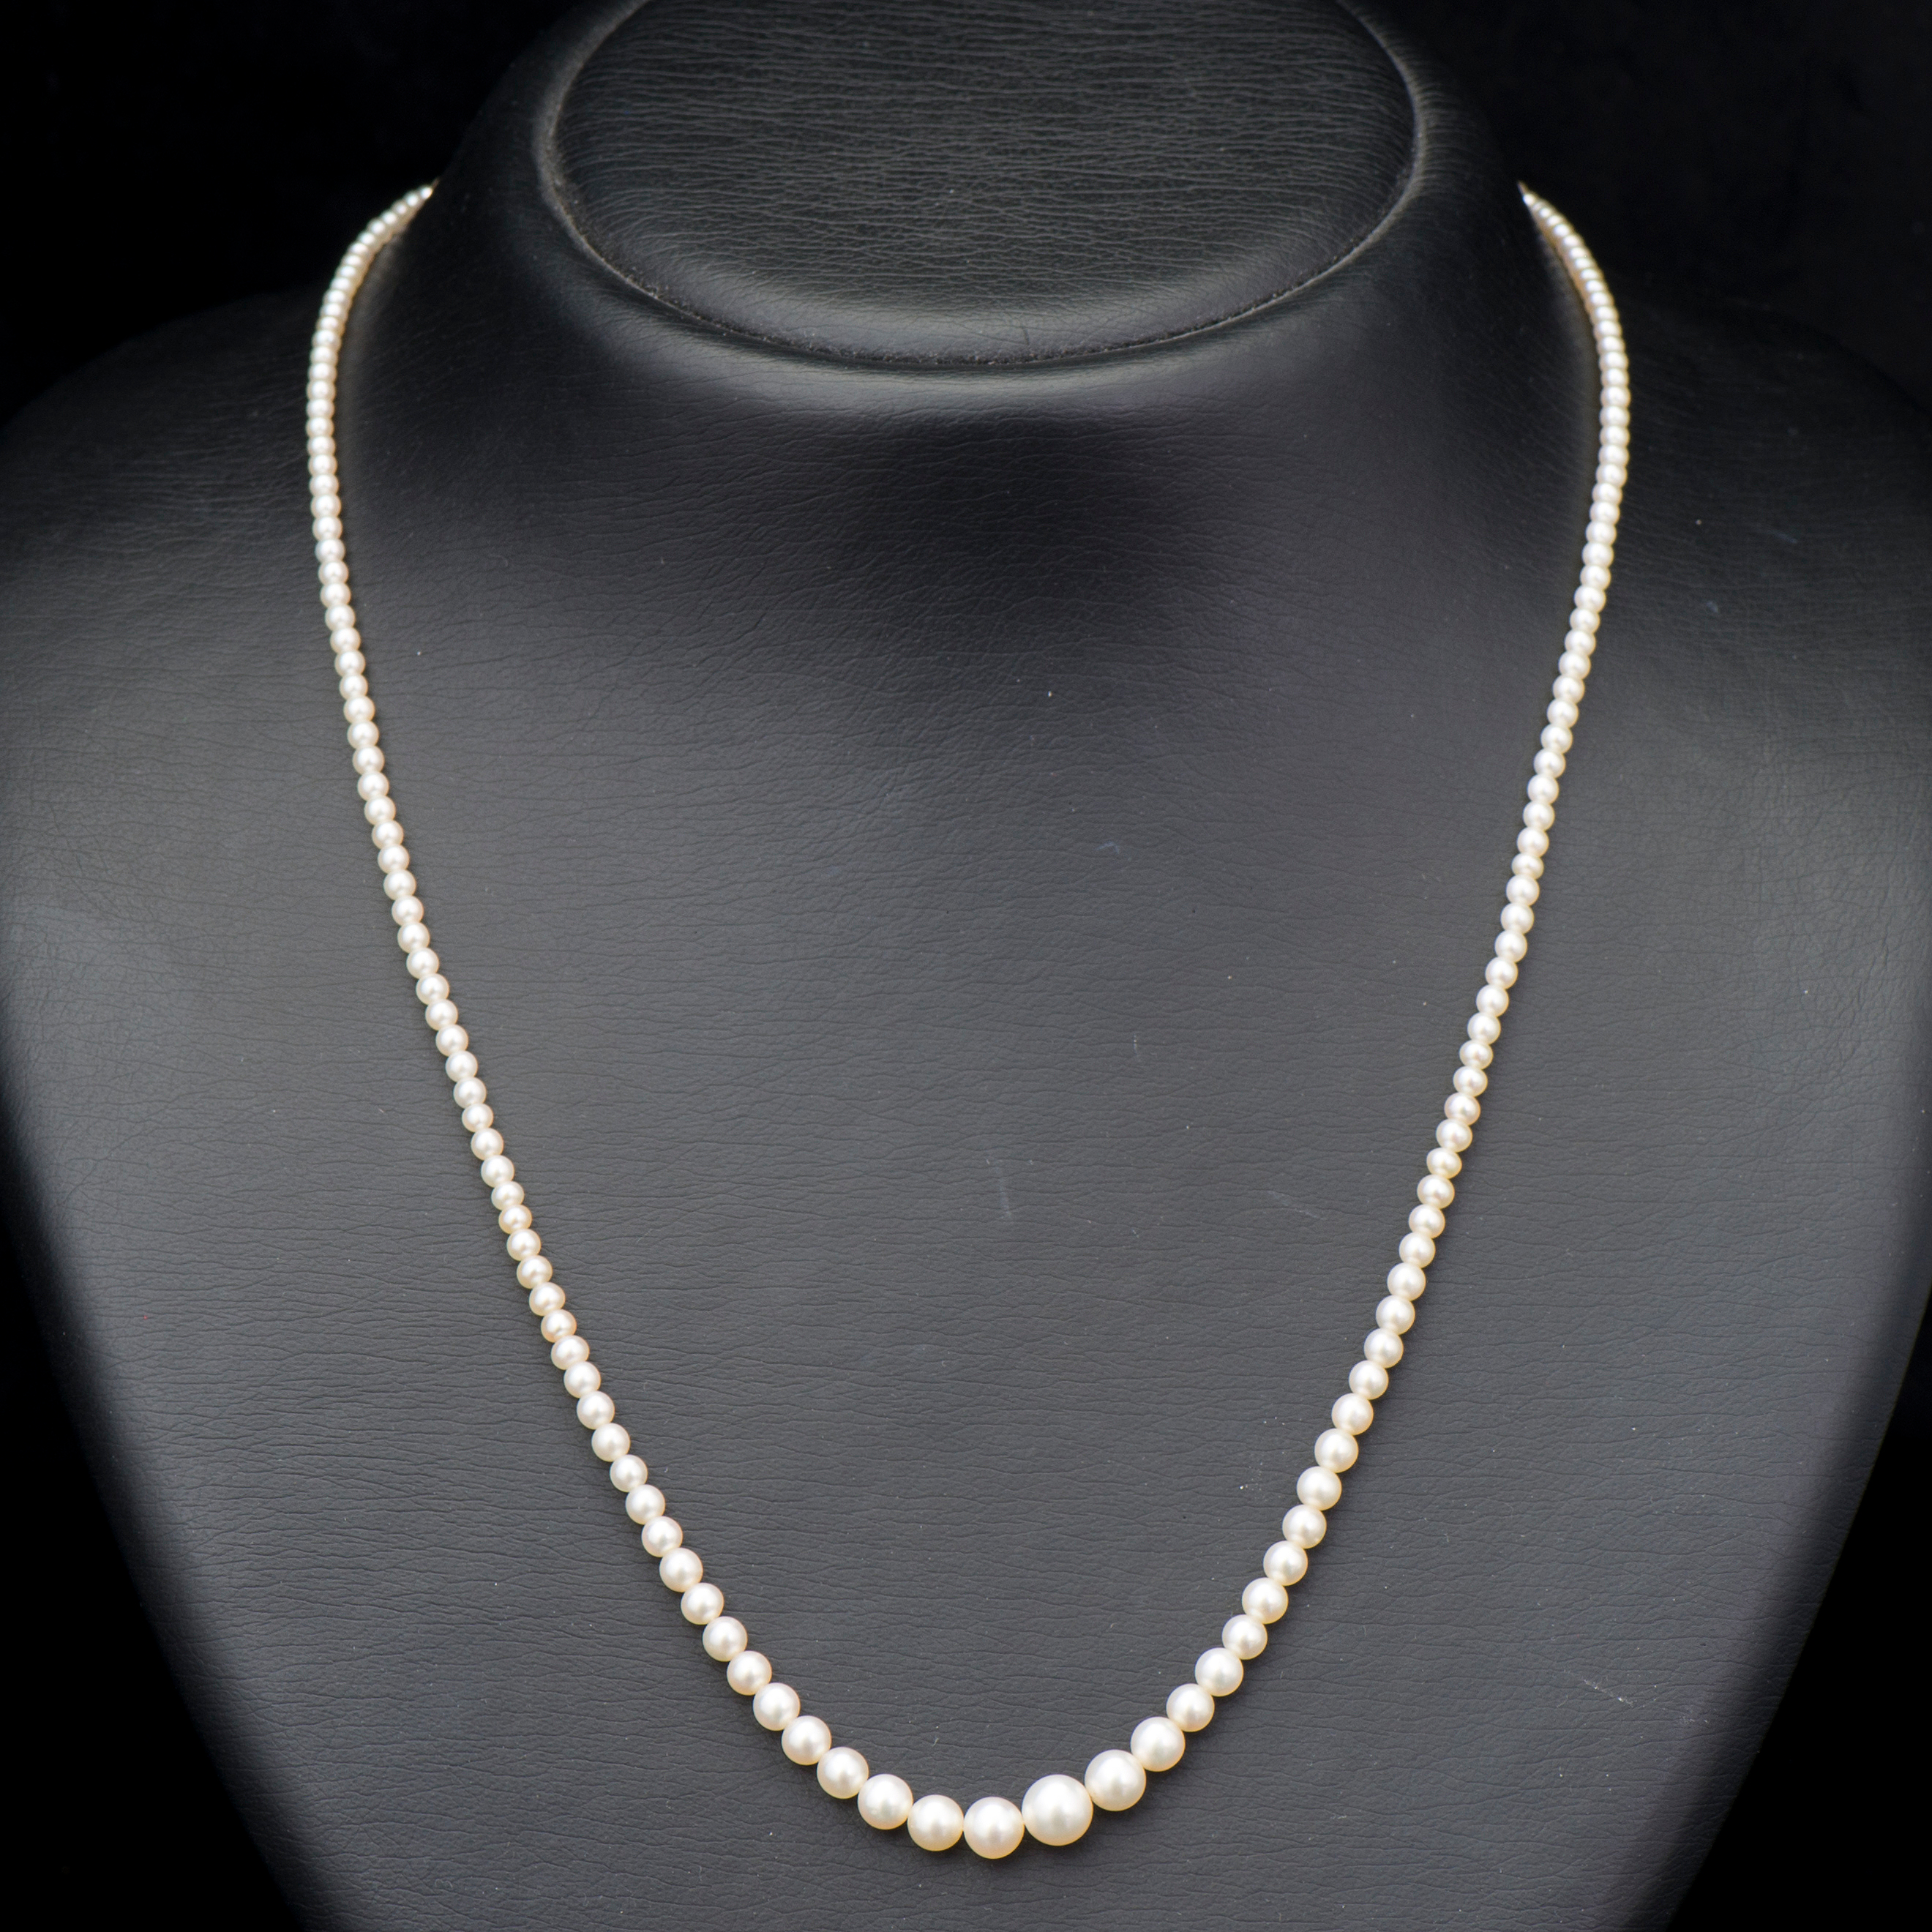 pearl color in pearls necklace sizes yangtze and size mixed freshwater products colors knotted with jewellery store